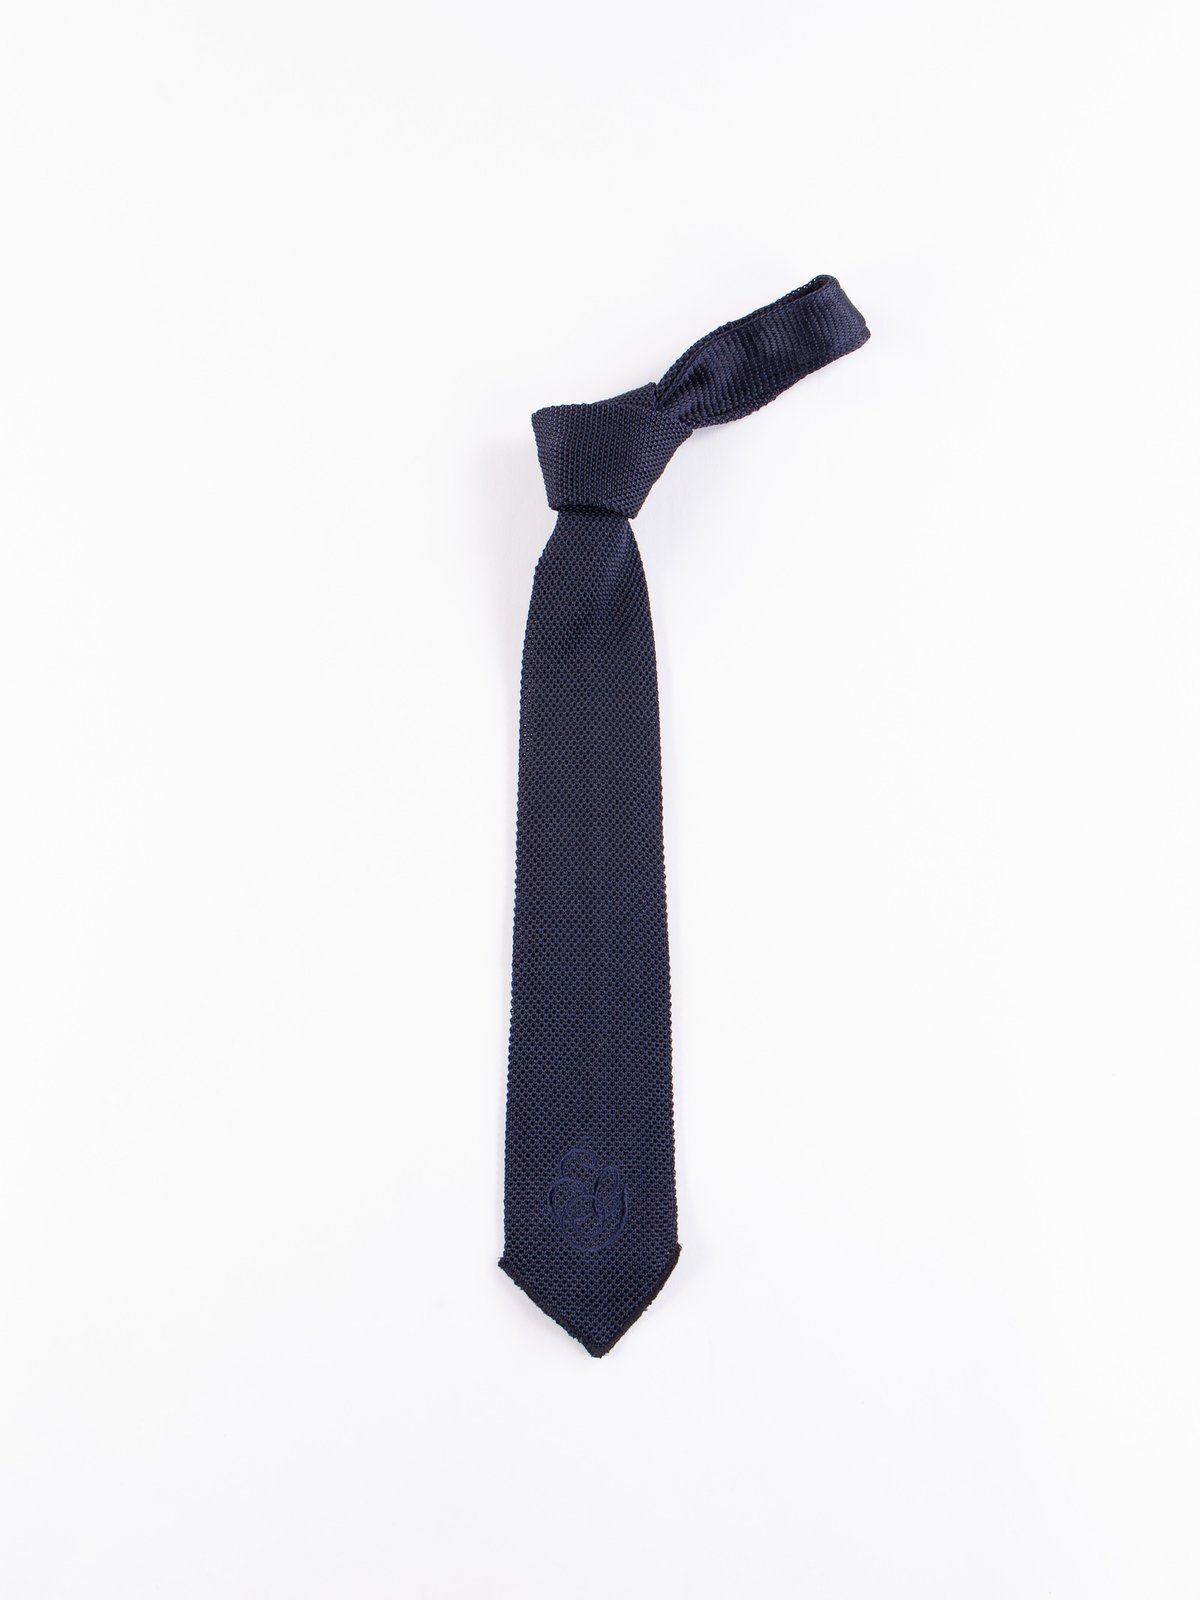 Navy Silk Embroidery Knit Tie - Image 1